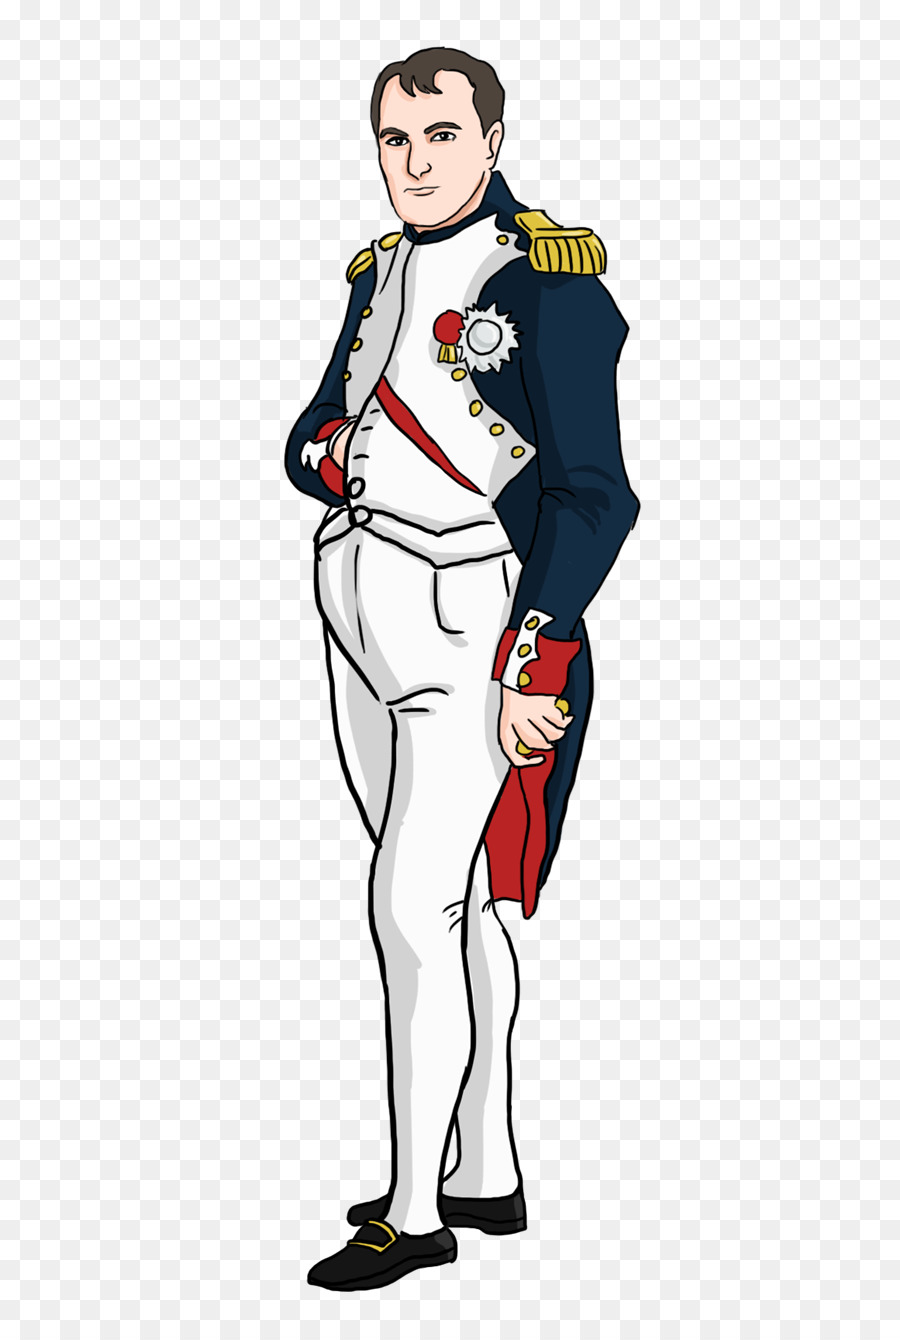 Napoleon clipart clip freeuse library Man Cartoon png download - 500*1336 - Free Transparent ... clip freeuse library